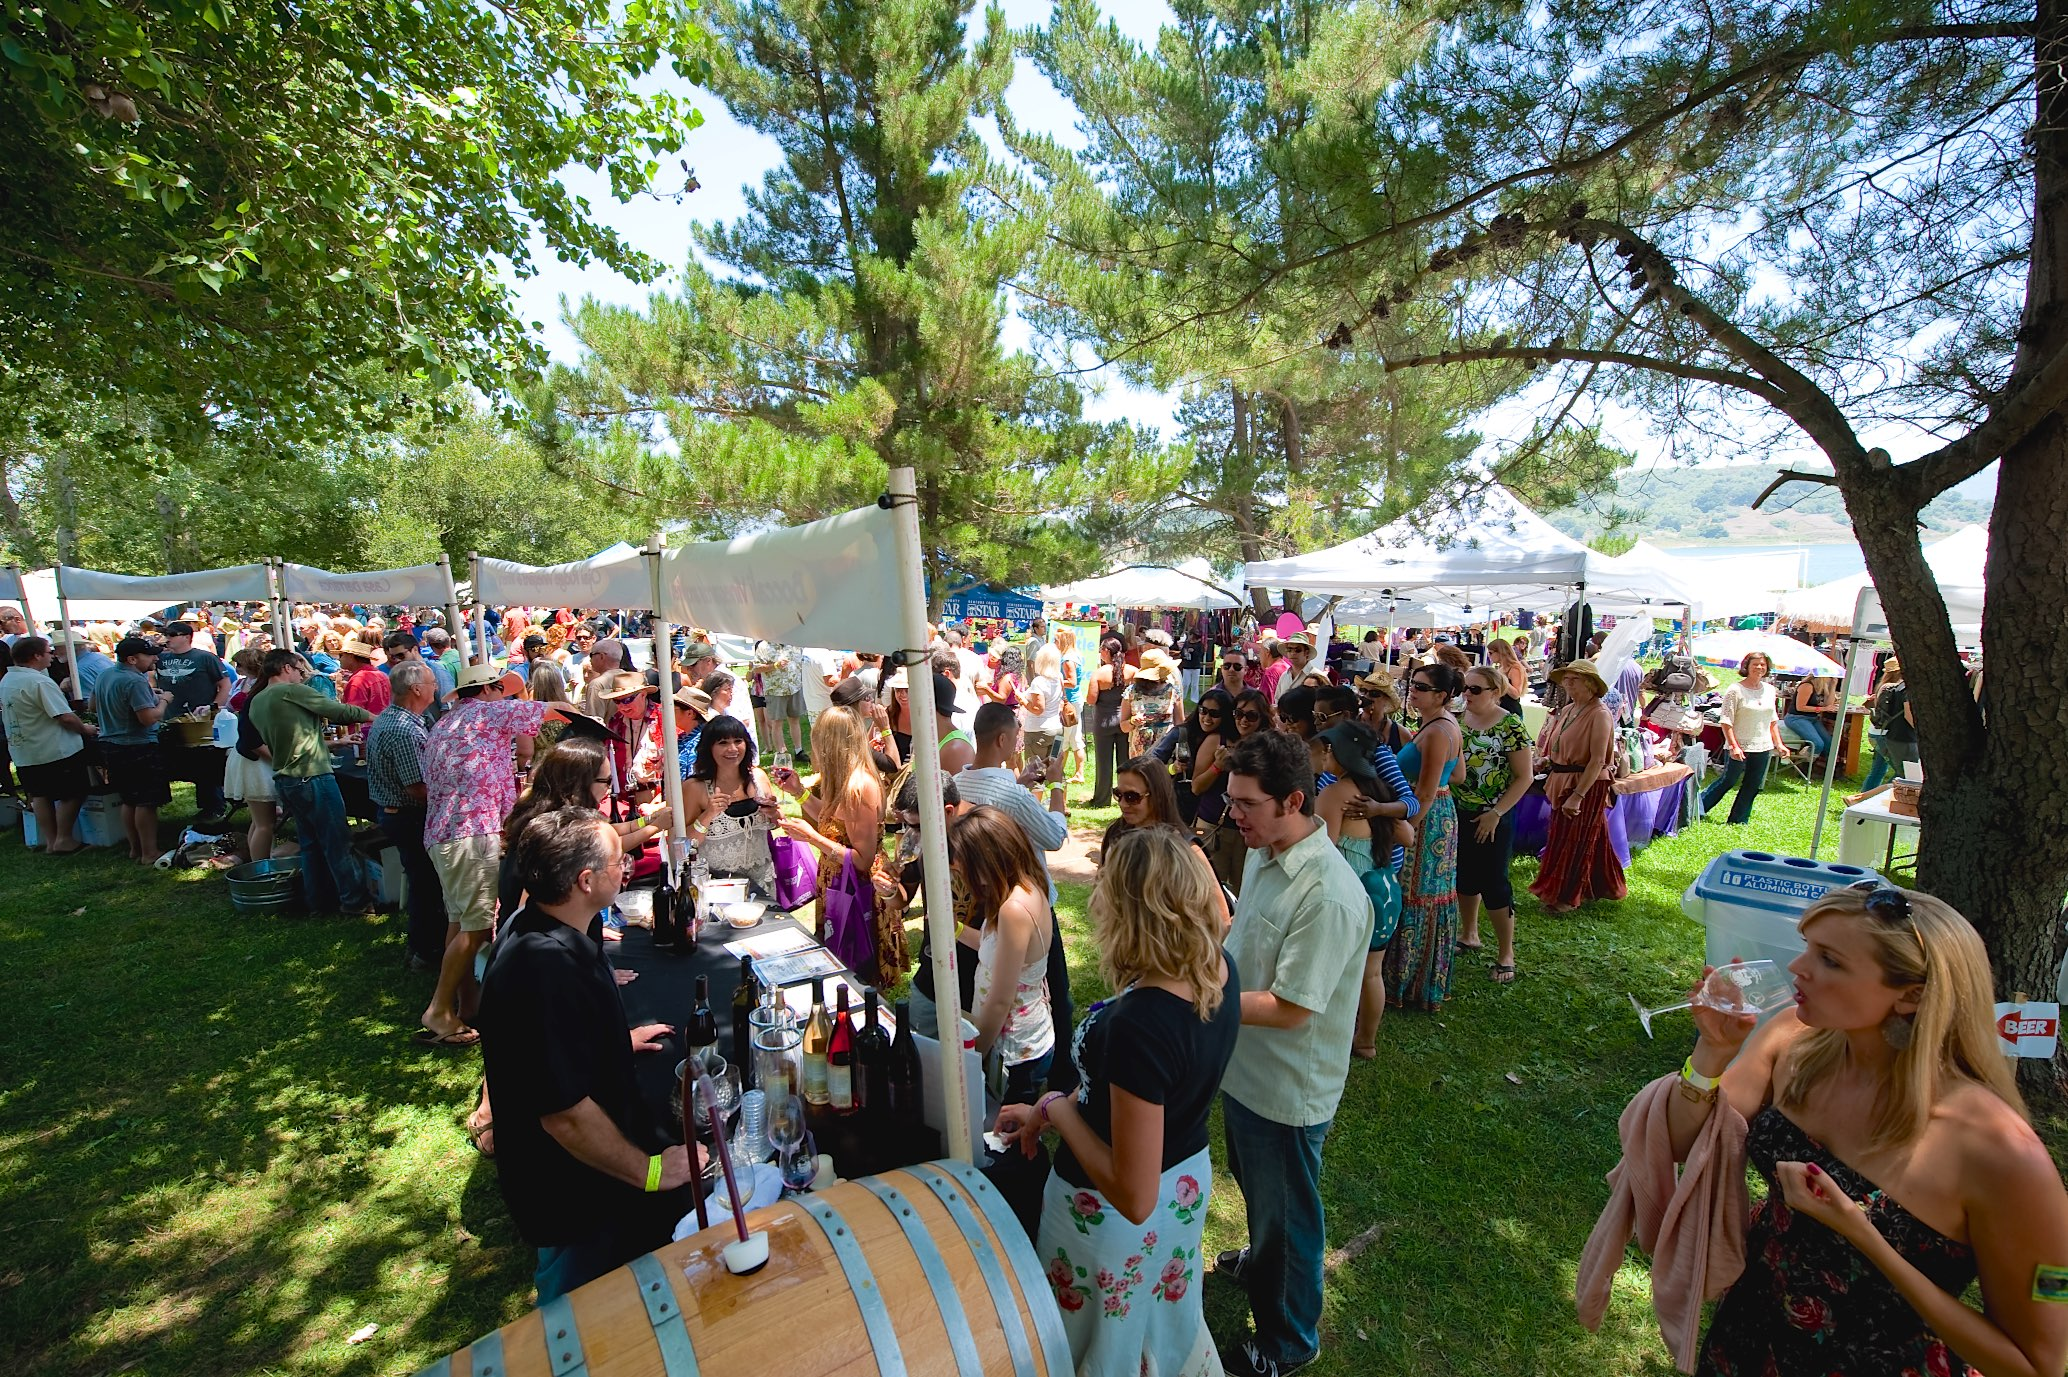 Ojai CA Events | Ojai Visitors - Festivals & Events | Events in Ojai